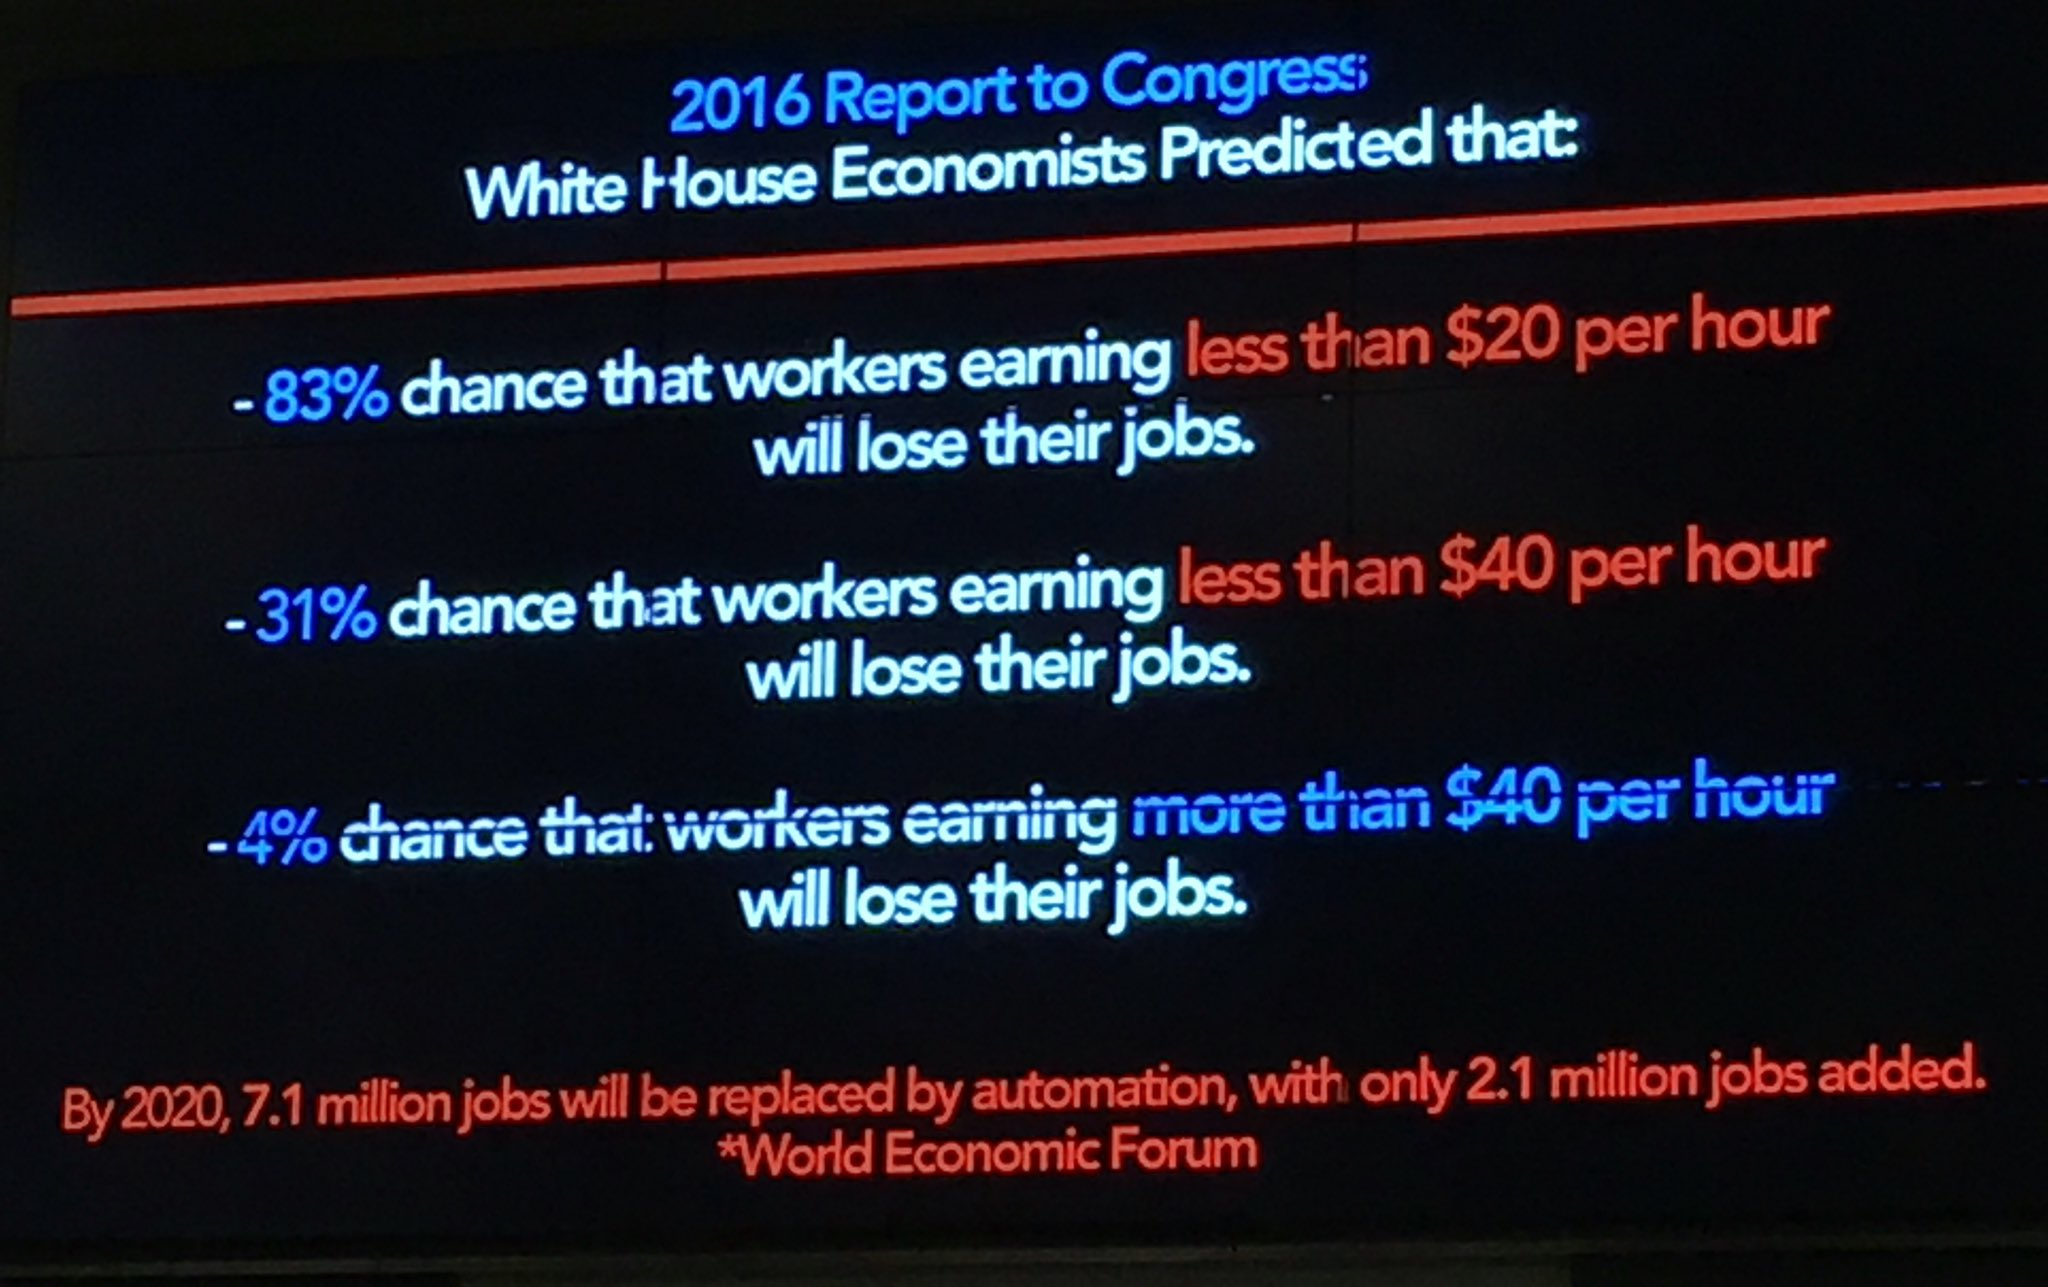 What are the jobs our students will have if these predictions come true? @thomascmurray #WGEDD https://t.co/NftBQsBKXZ